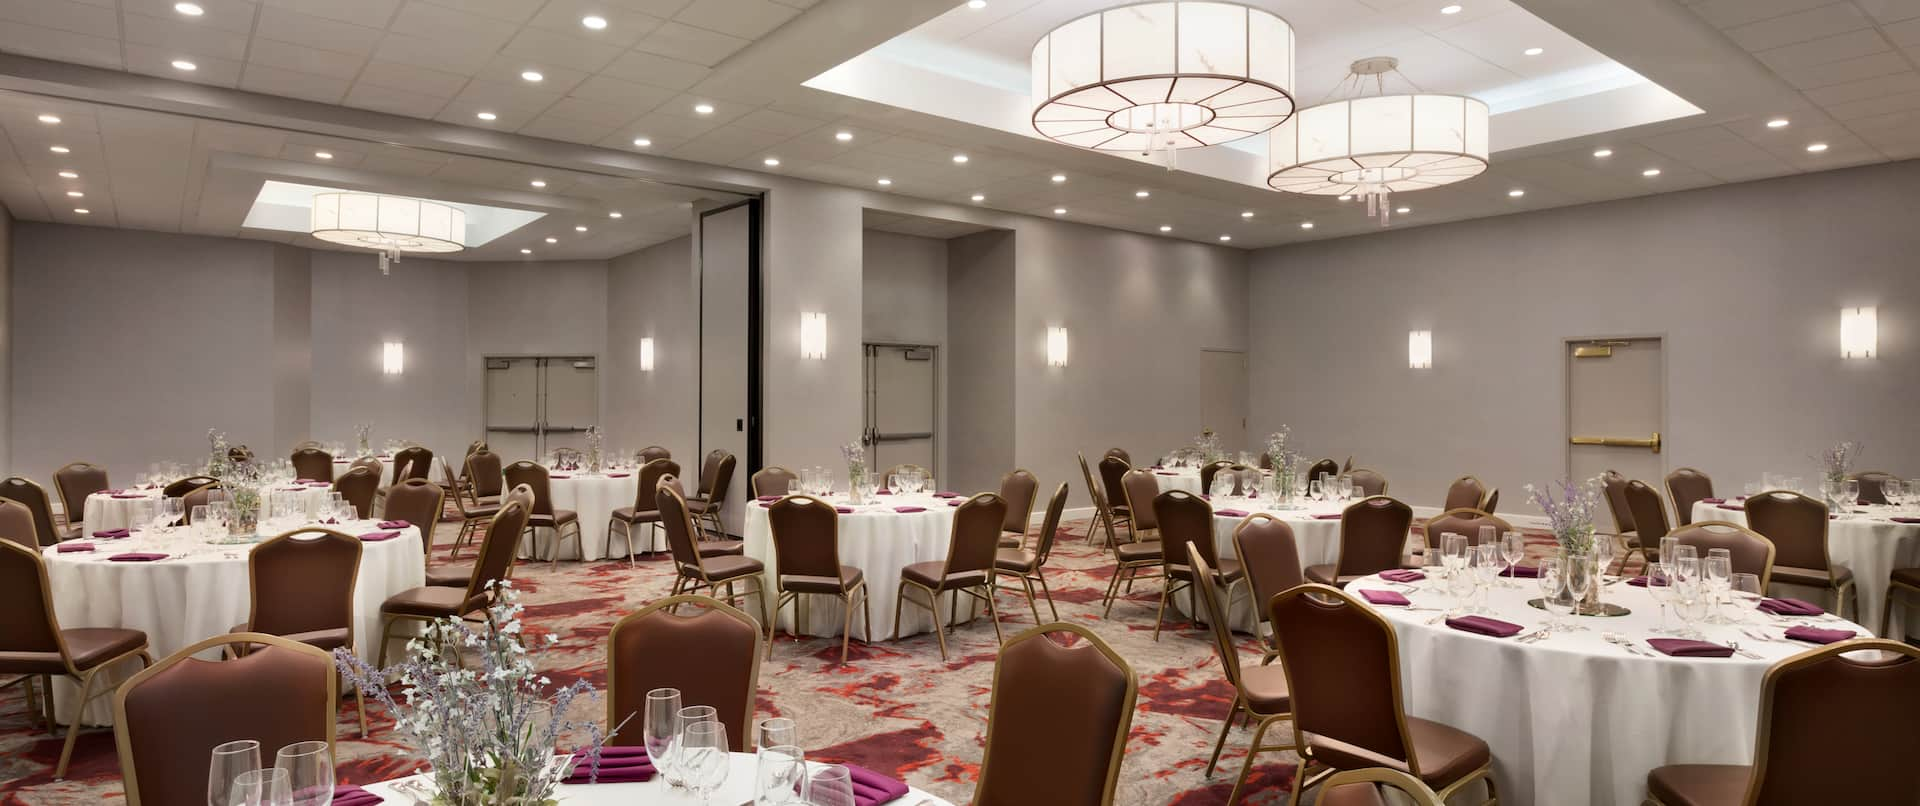 Ballroom with Round Banquet Tables